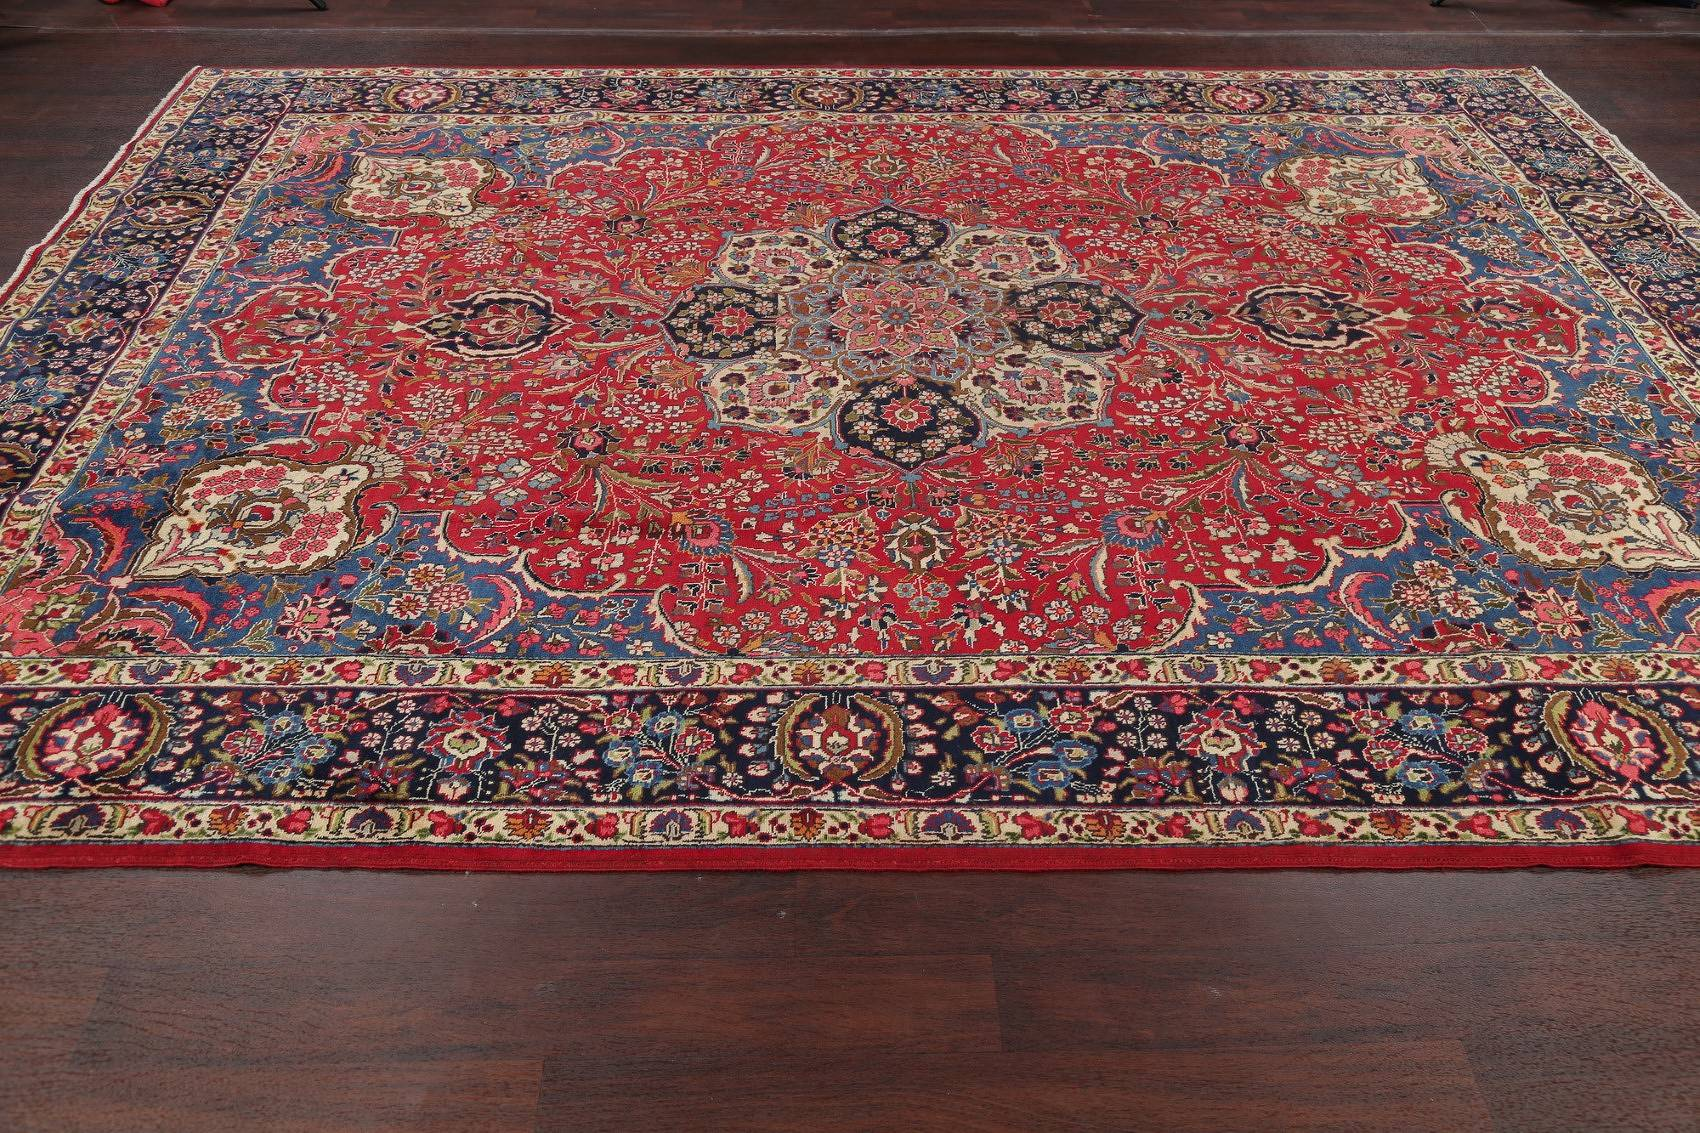 Vintage Tabriz Persian Hand-Knotted 8x11 Red Area Wool Rug